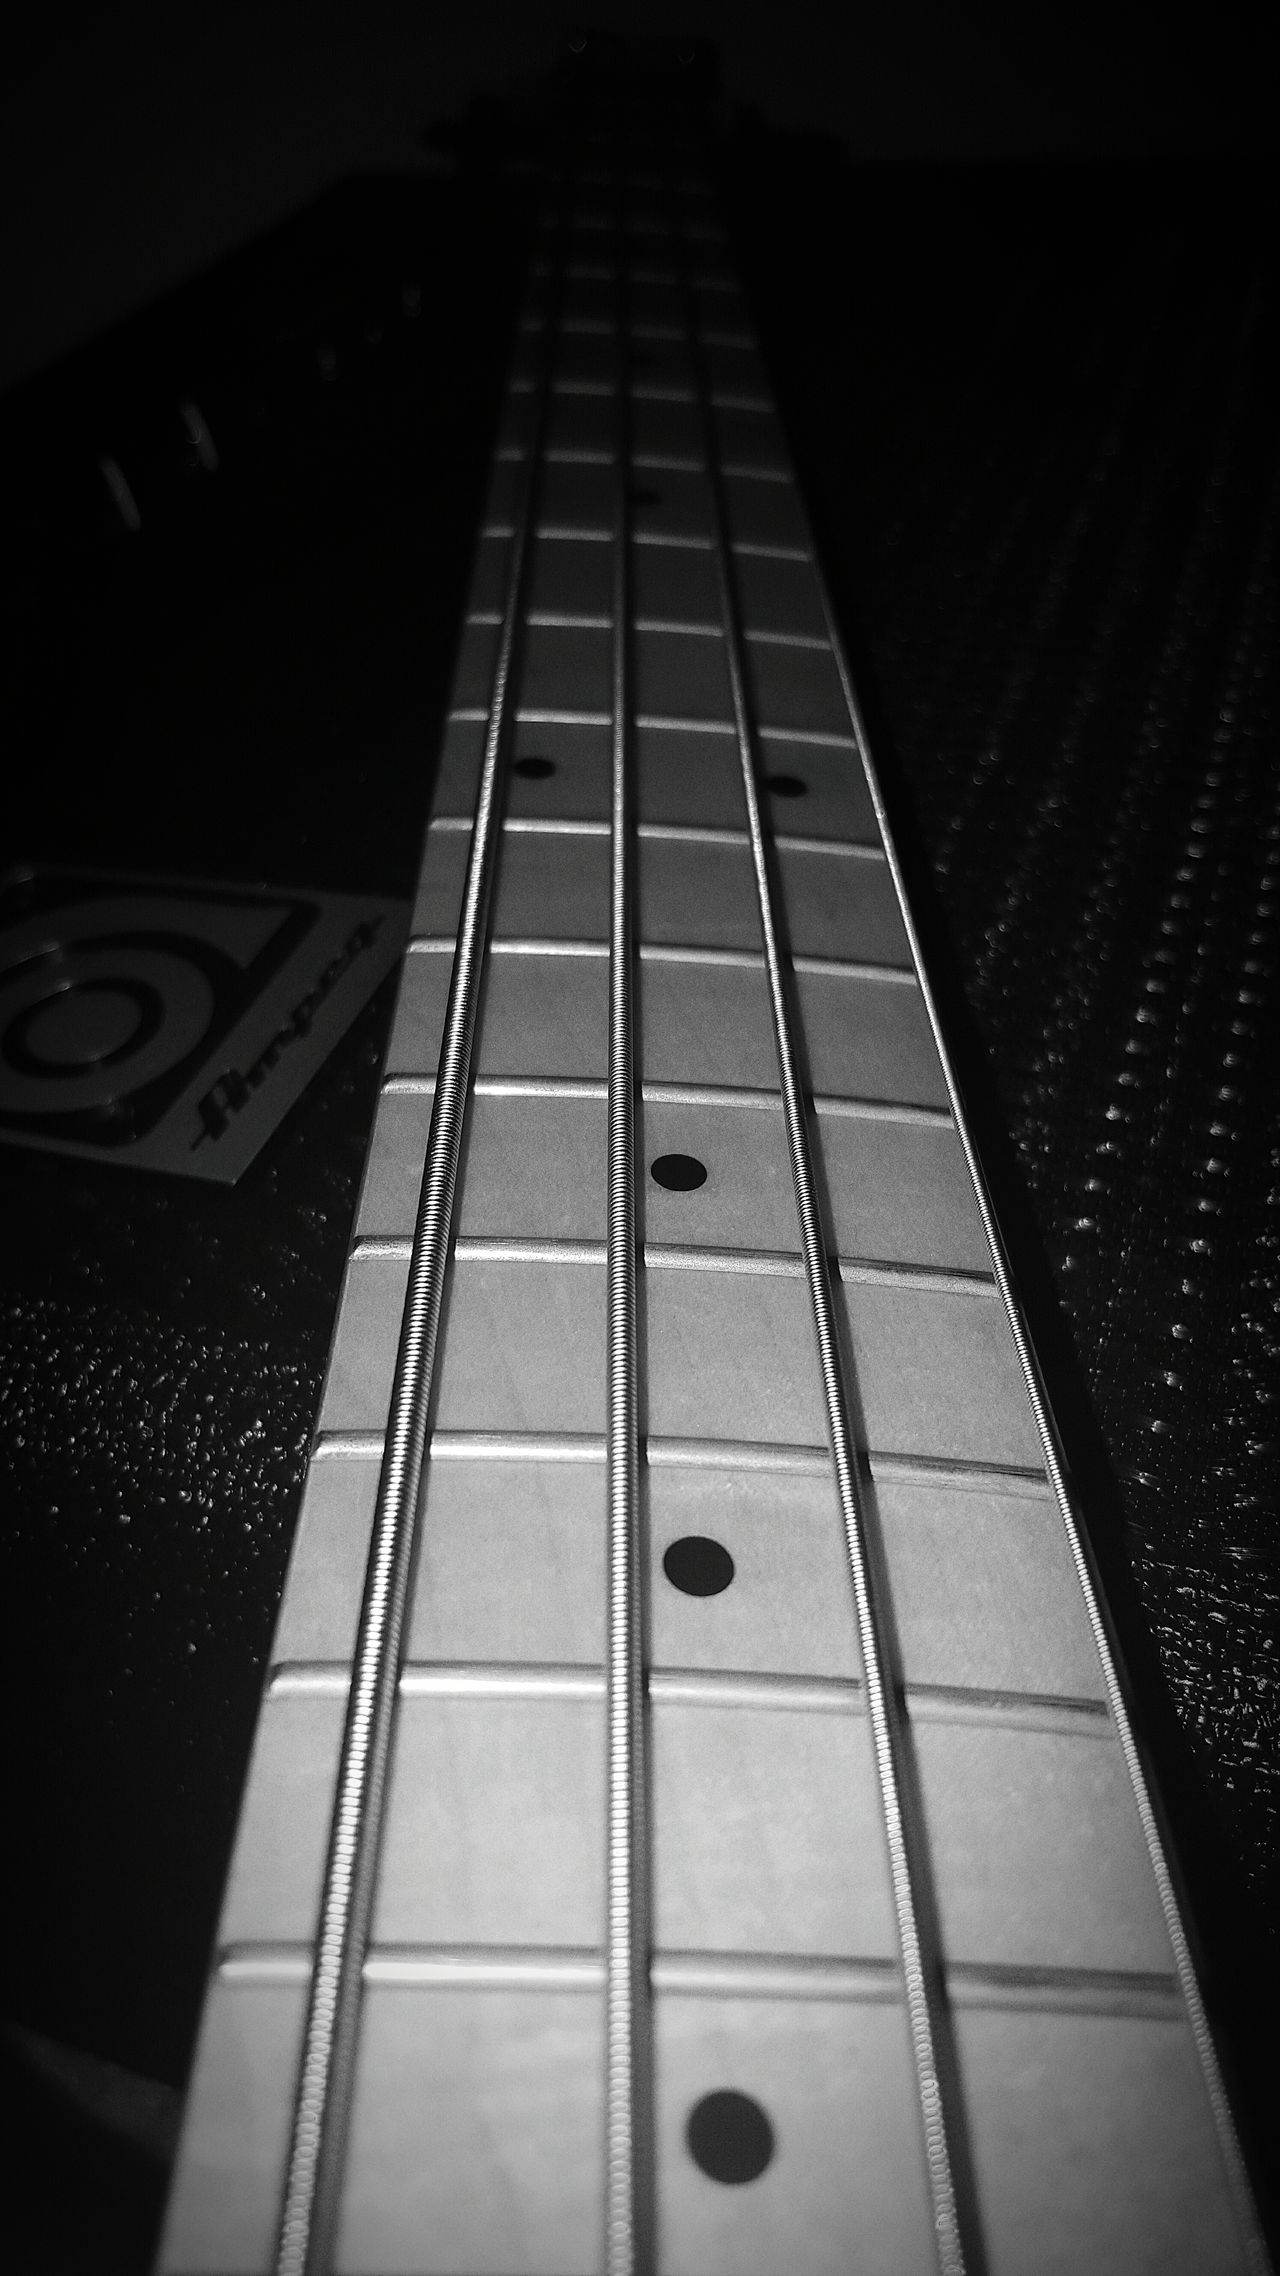 Taking Photos Enjoying Life Loveit POV Ibanez Coco's Bass Houseofguitars Hers Blackandwhite Coco'sPics Bass Guitar Amplifier Ampeg Bass Amplifier Bass Guitar EyeEm Best Shots - Black + White